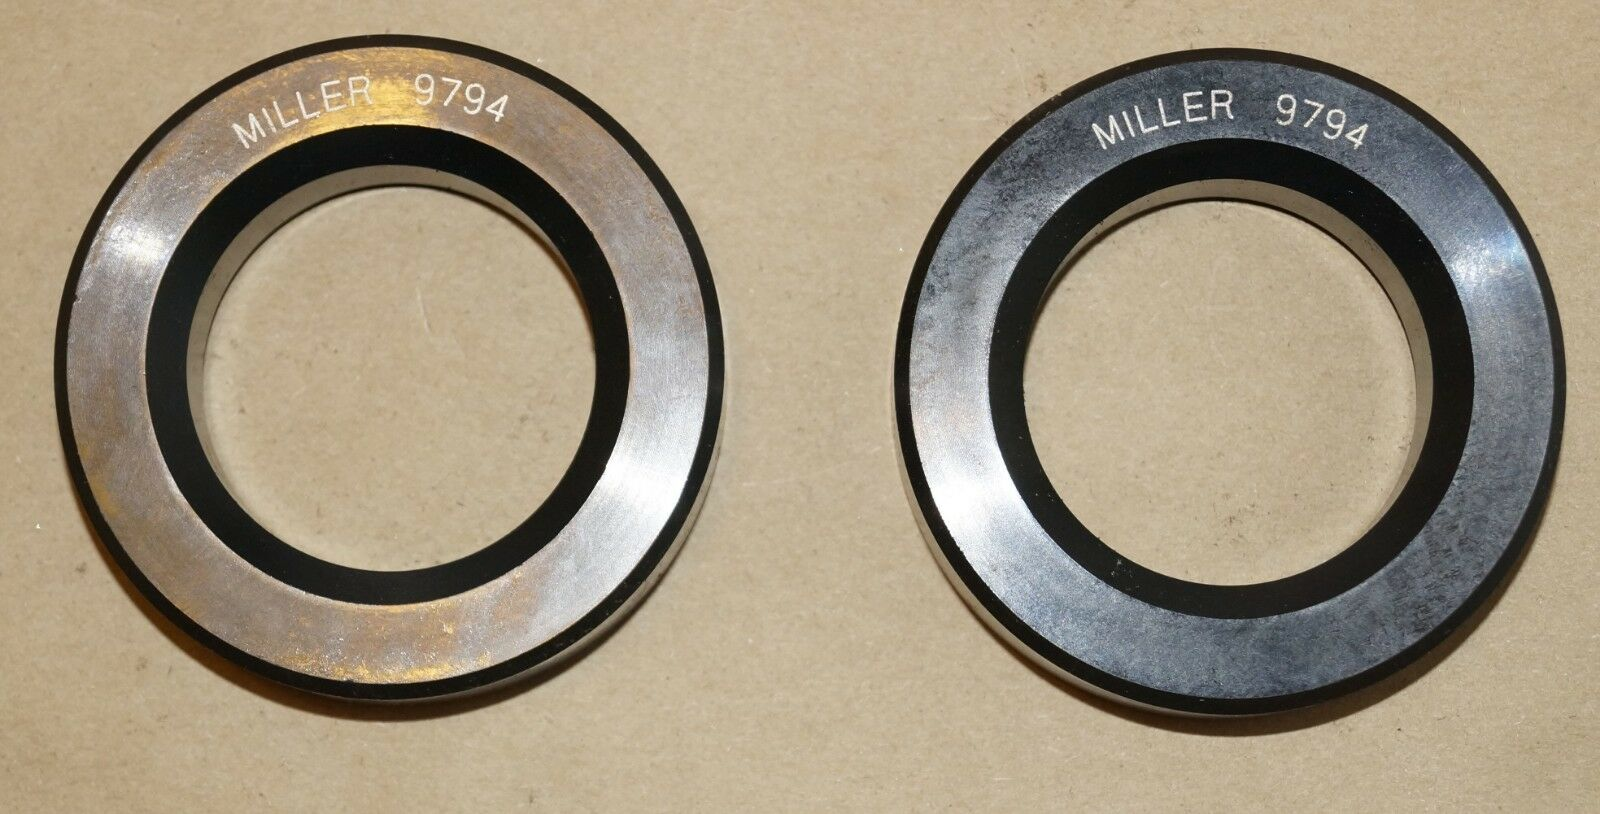 SPX Miller 9794 Dummy Bearing Set - Jeep Grand Cherokee & Commander